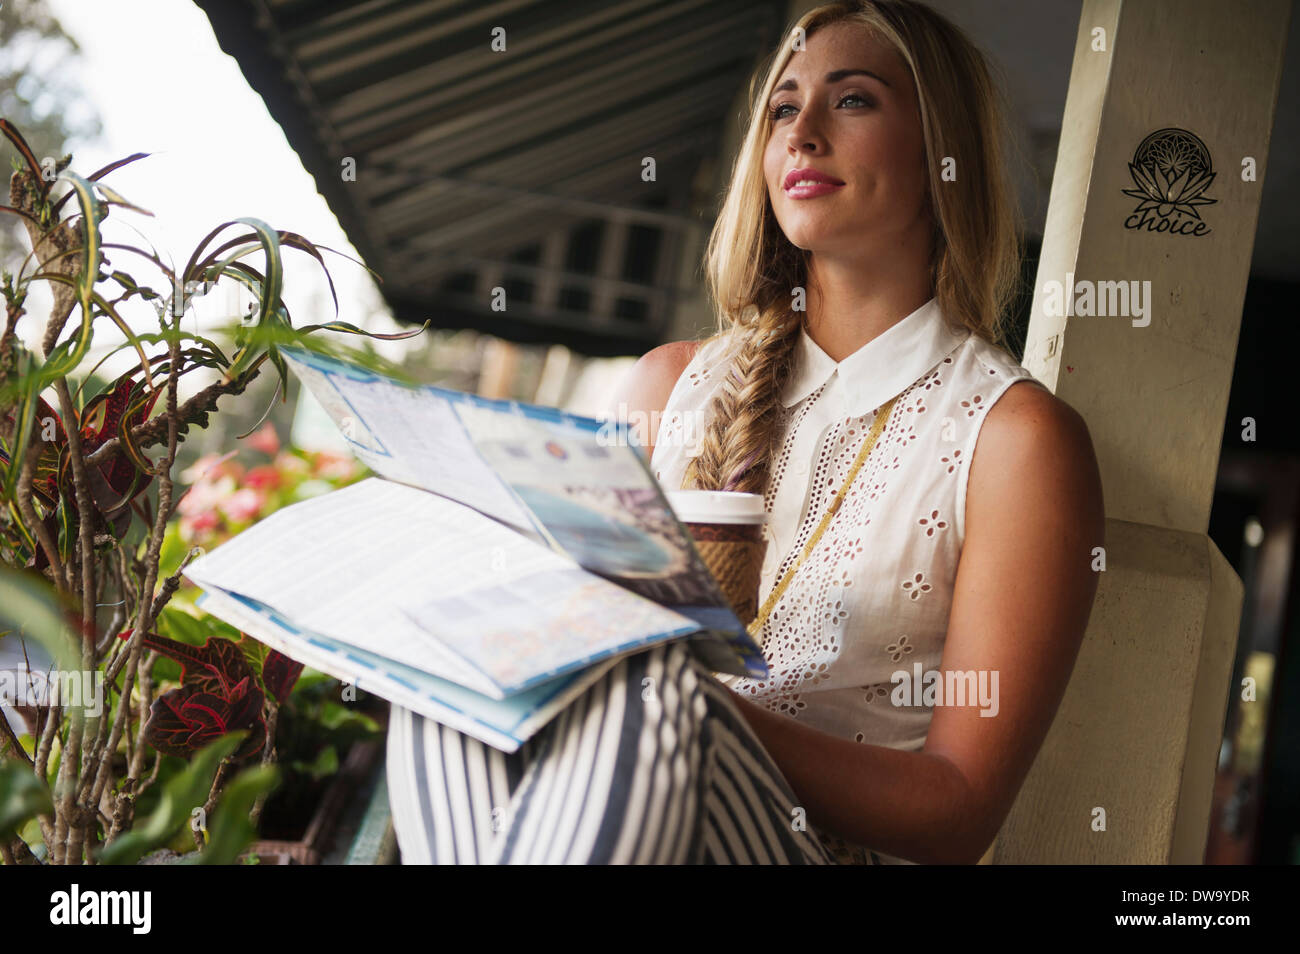 Young woman with map daydreaming - Stock Image